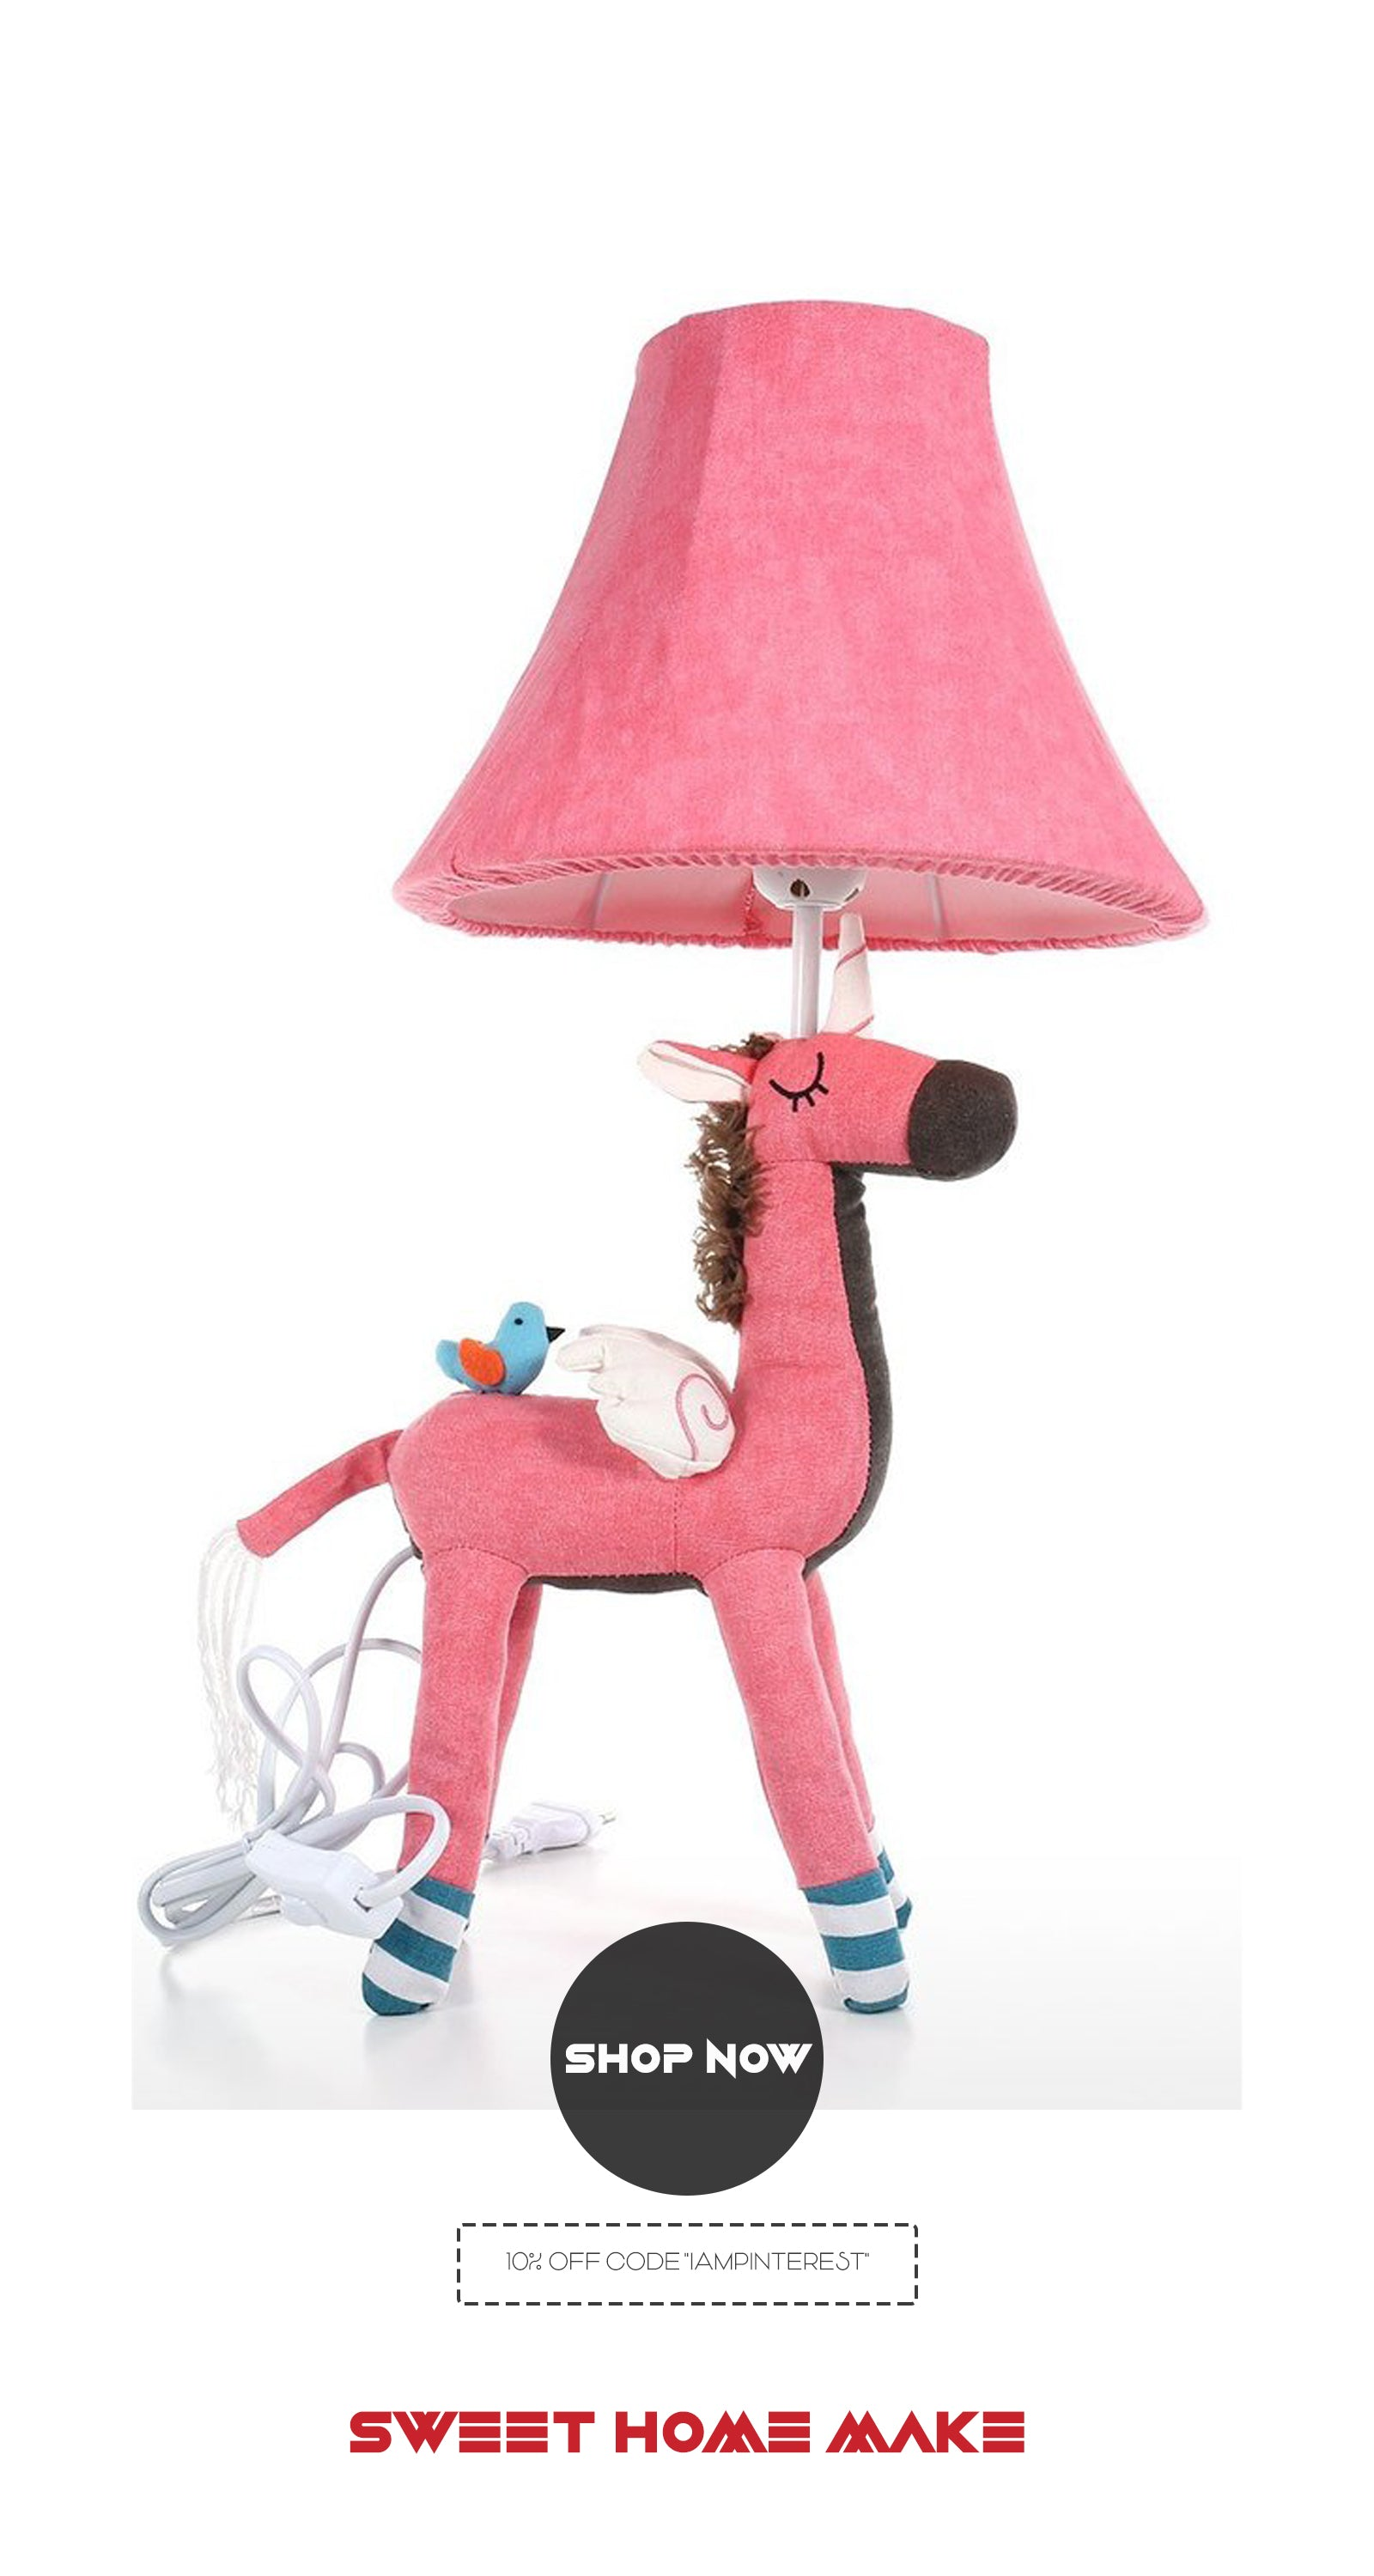 Bedside Lamp with Unicorn Toy For Kids and Nursery Room Ideas